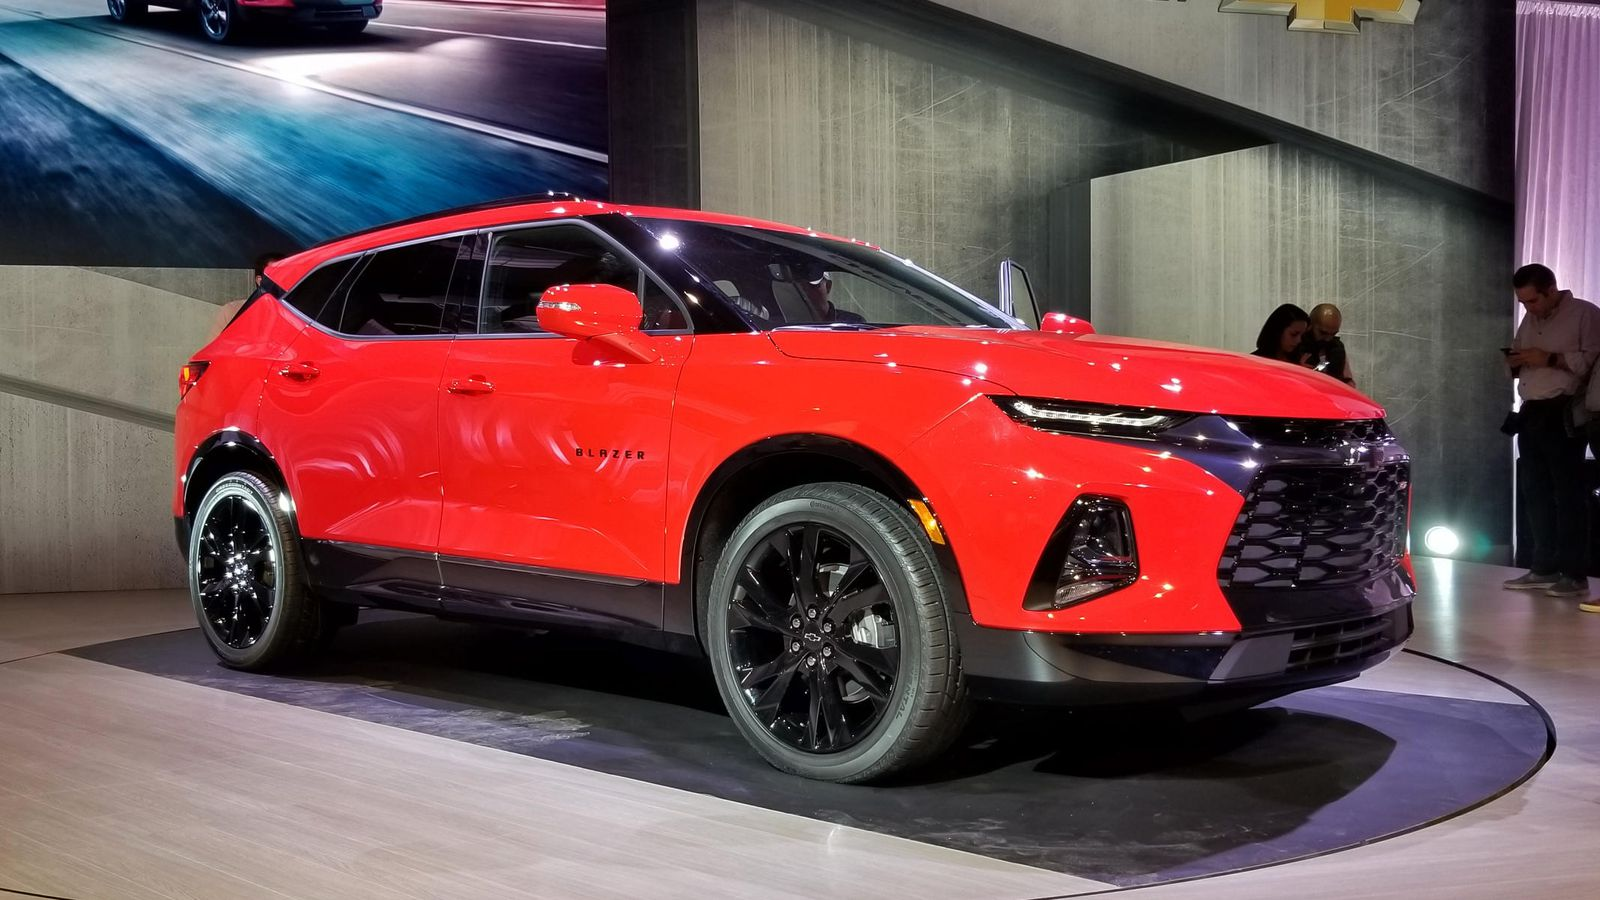 2019 Chevy Blazer Specs | Simi Valley Chevrolet New Cars ...